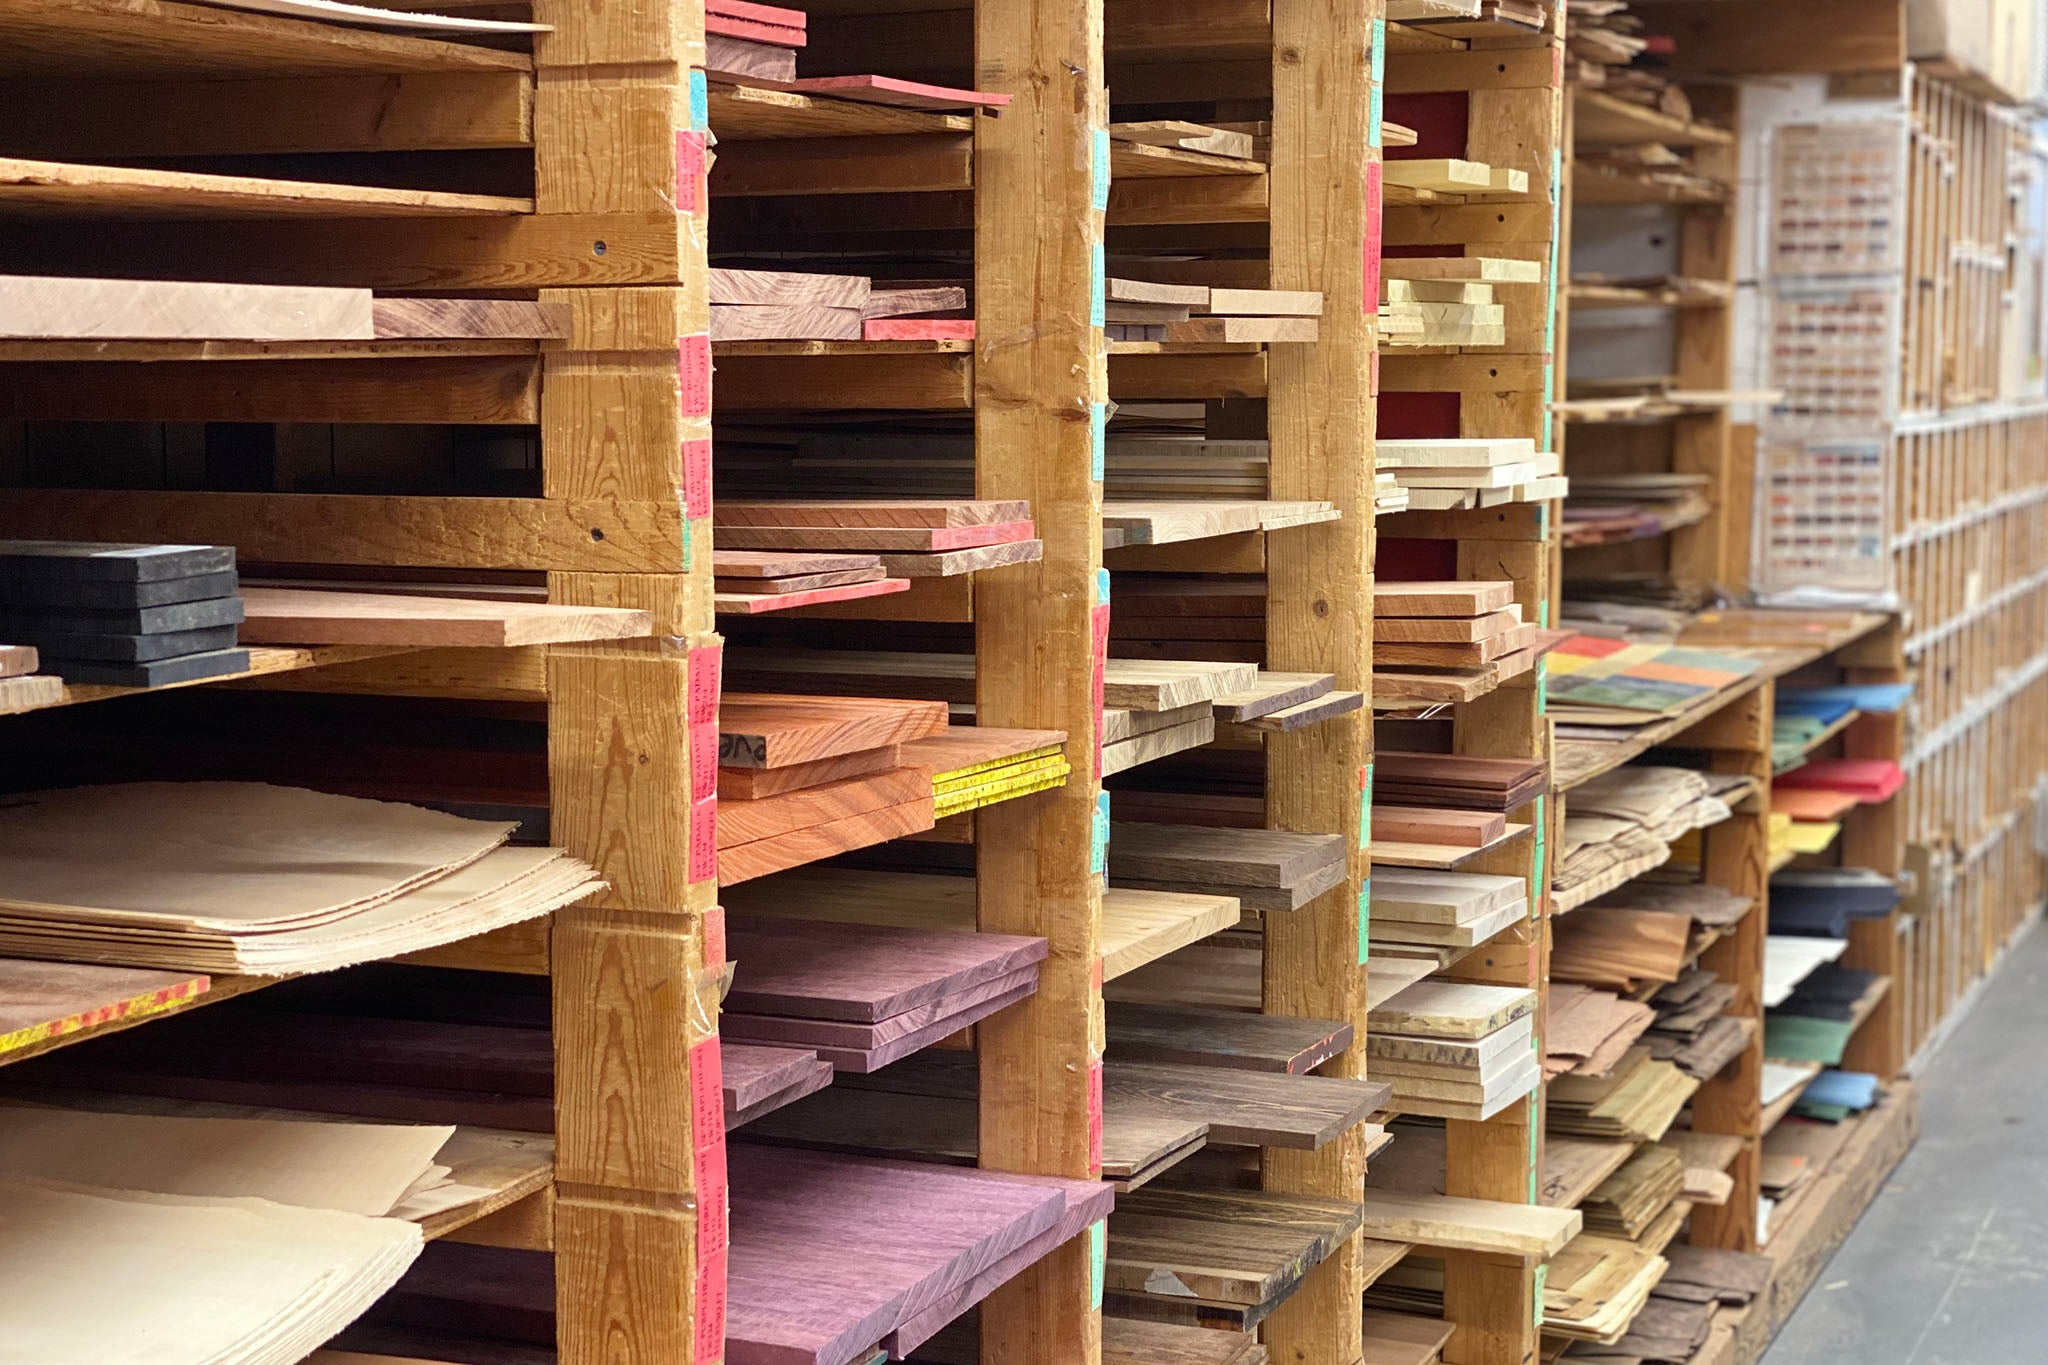 Specialty lumber store in Fort Lauderdale for DIY furniture projects